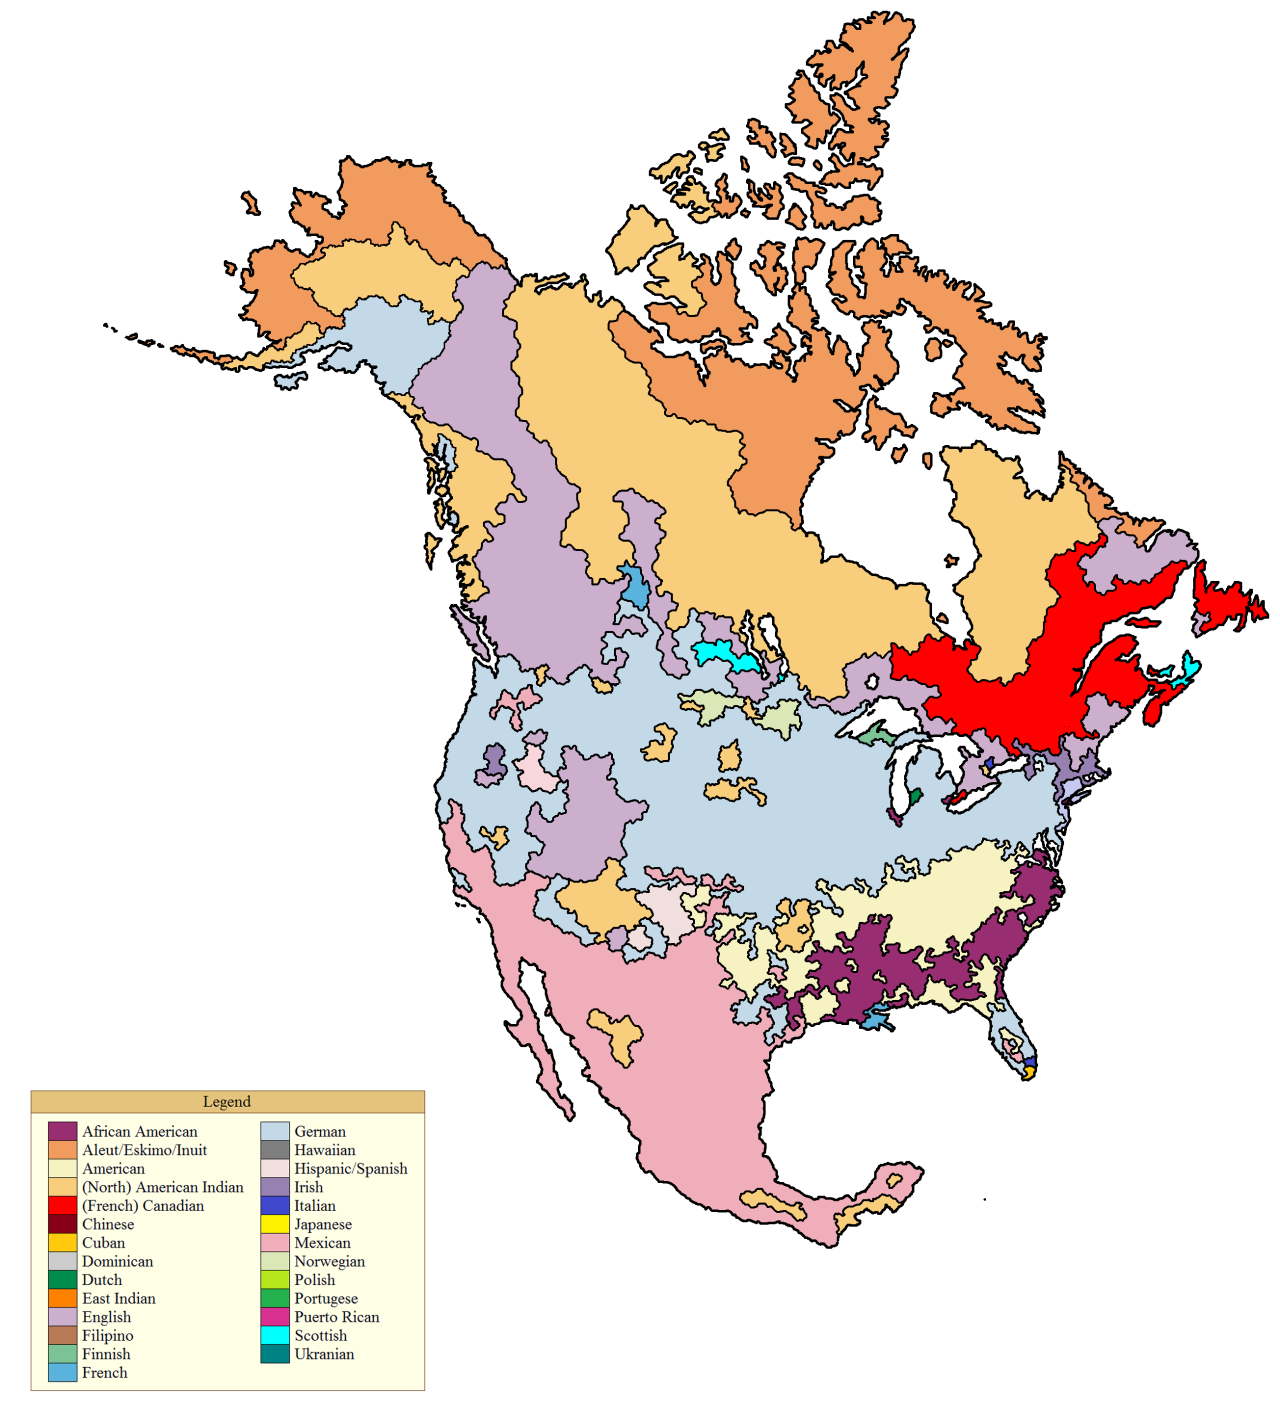 A map of North America if it was divided by the largest ancestry in each county